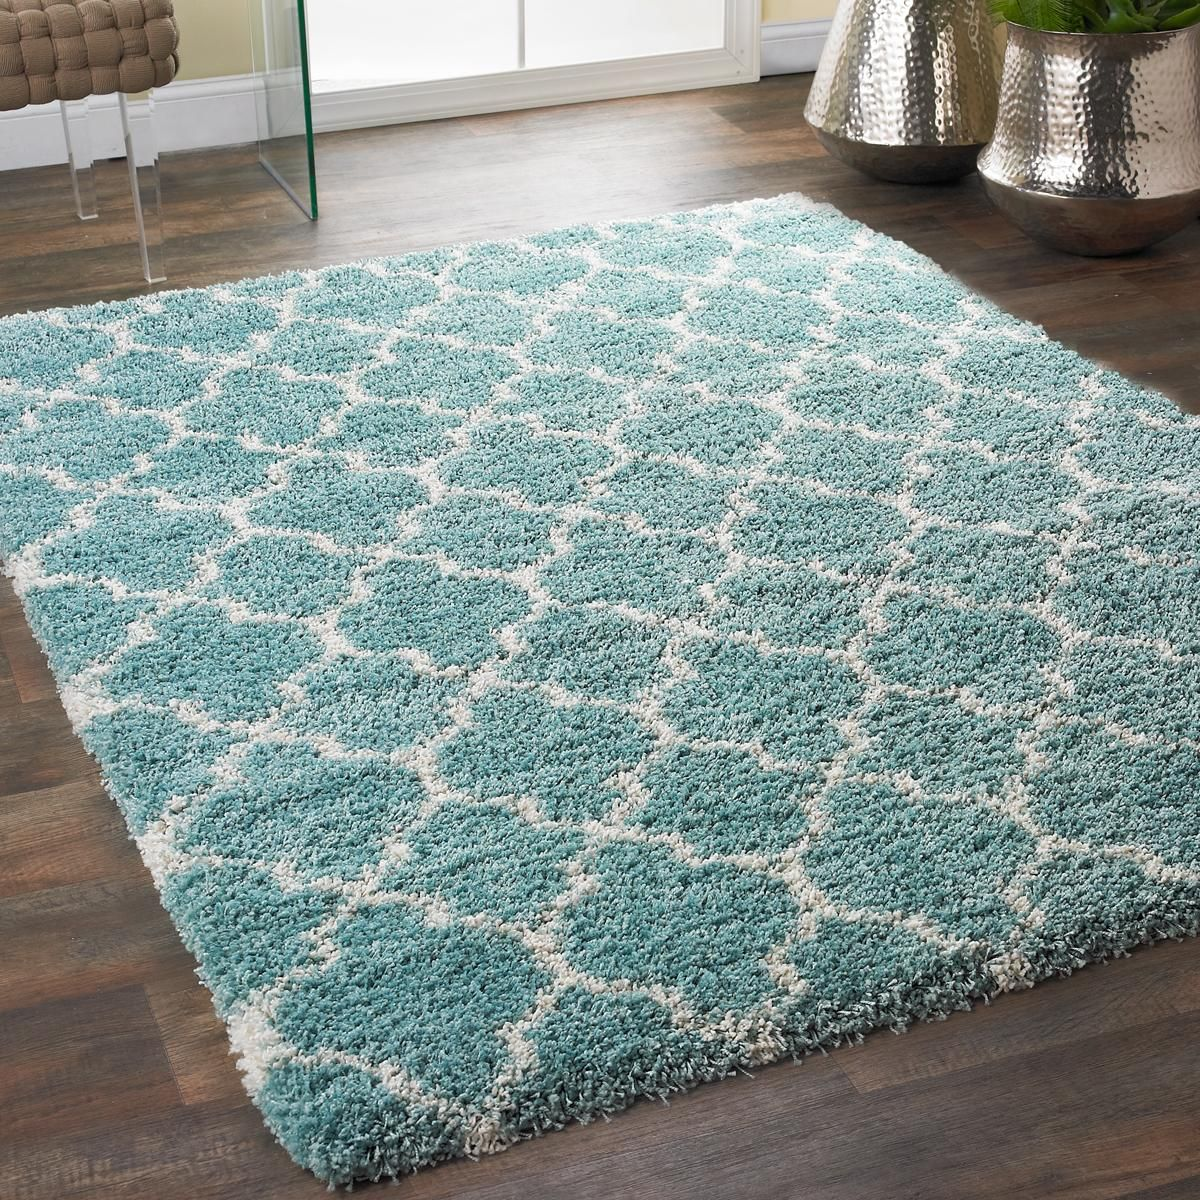 Lofty trellis plush area rug plush area rugs and trellis for Area carpets and rugs